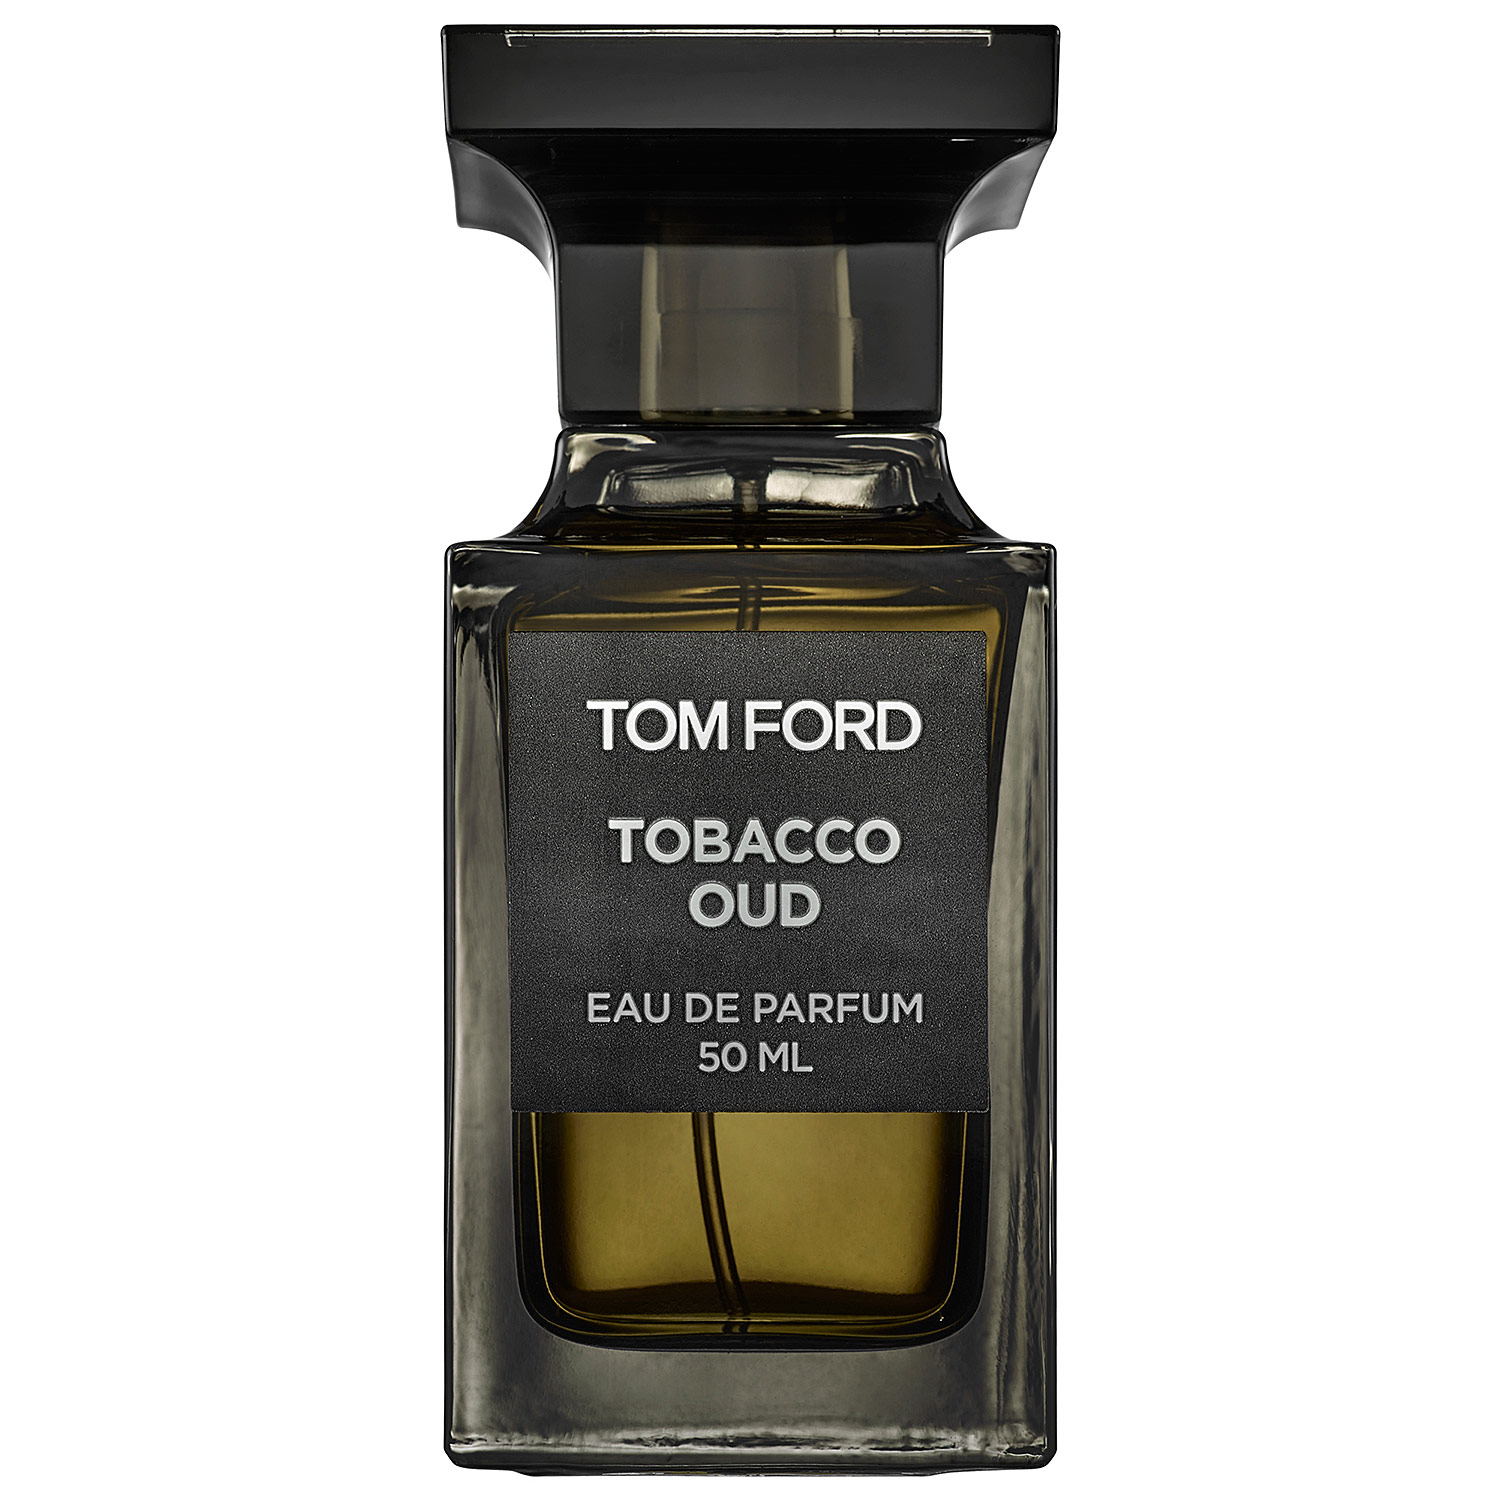 tom ford 39 tobacco oud 39 eau de parfum spray new. Black Bedroom Furniture Sets. Home Design Ideas